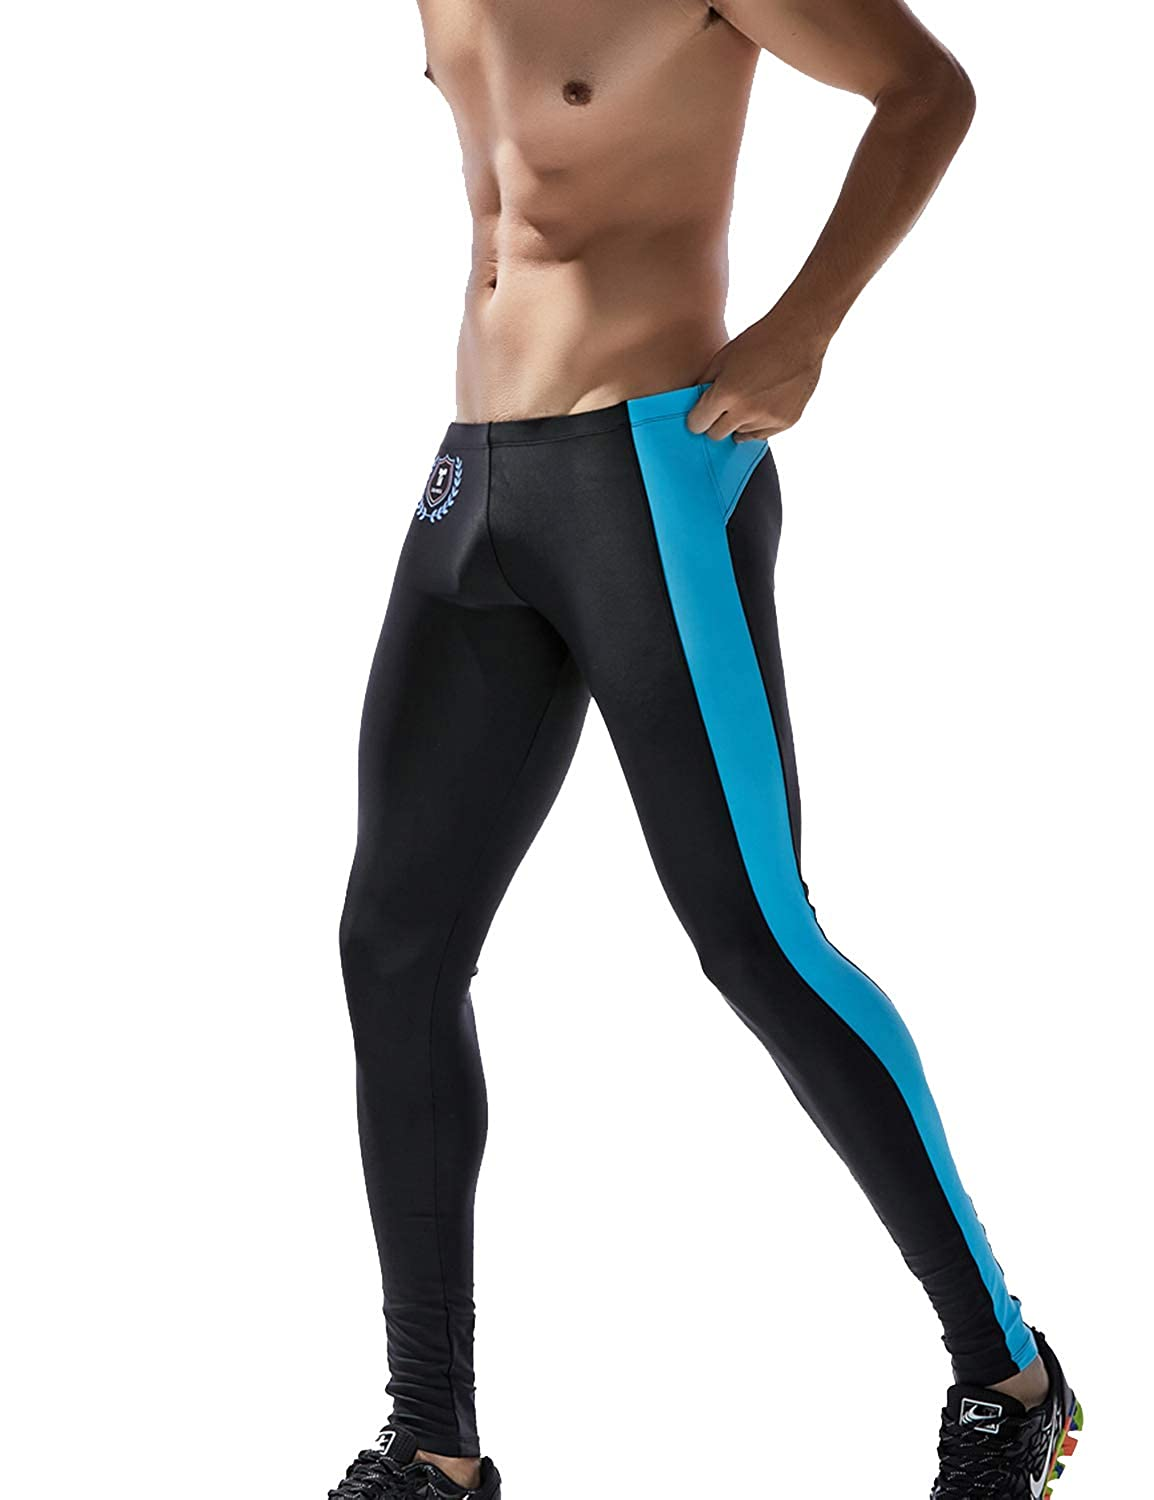 a7ac1ad999233 Amazon.com: TAUWELL by SEOBEAN Mens Sports Compression Tights Leggings:  Clothing